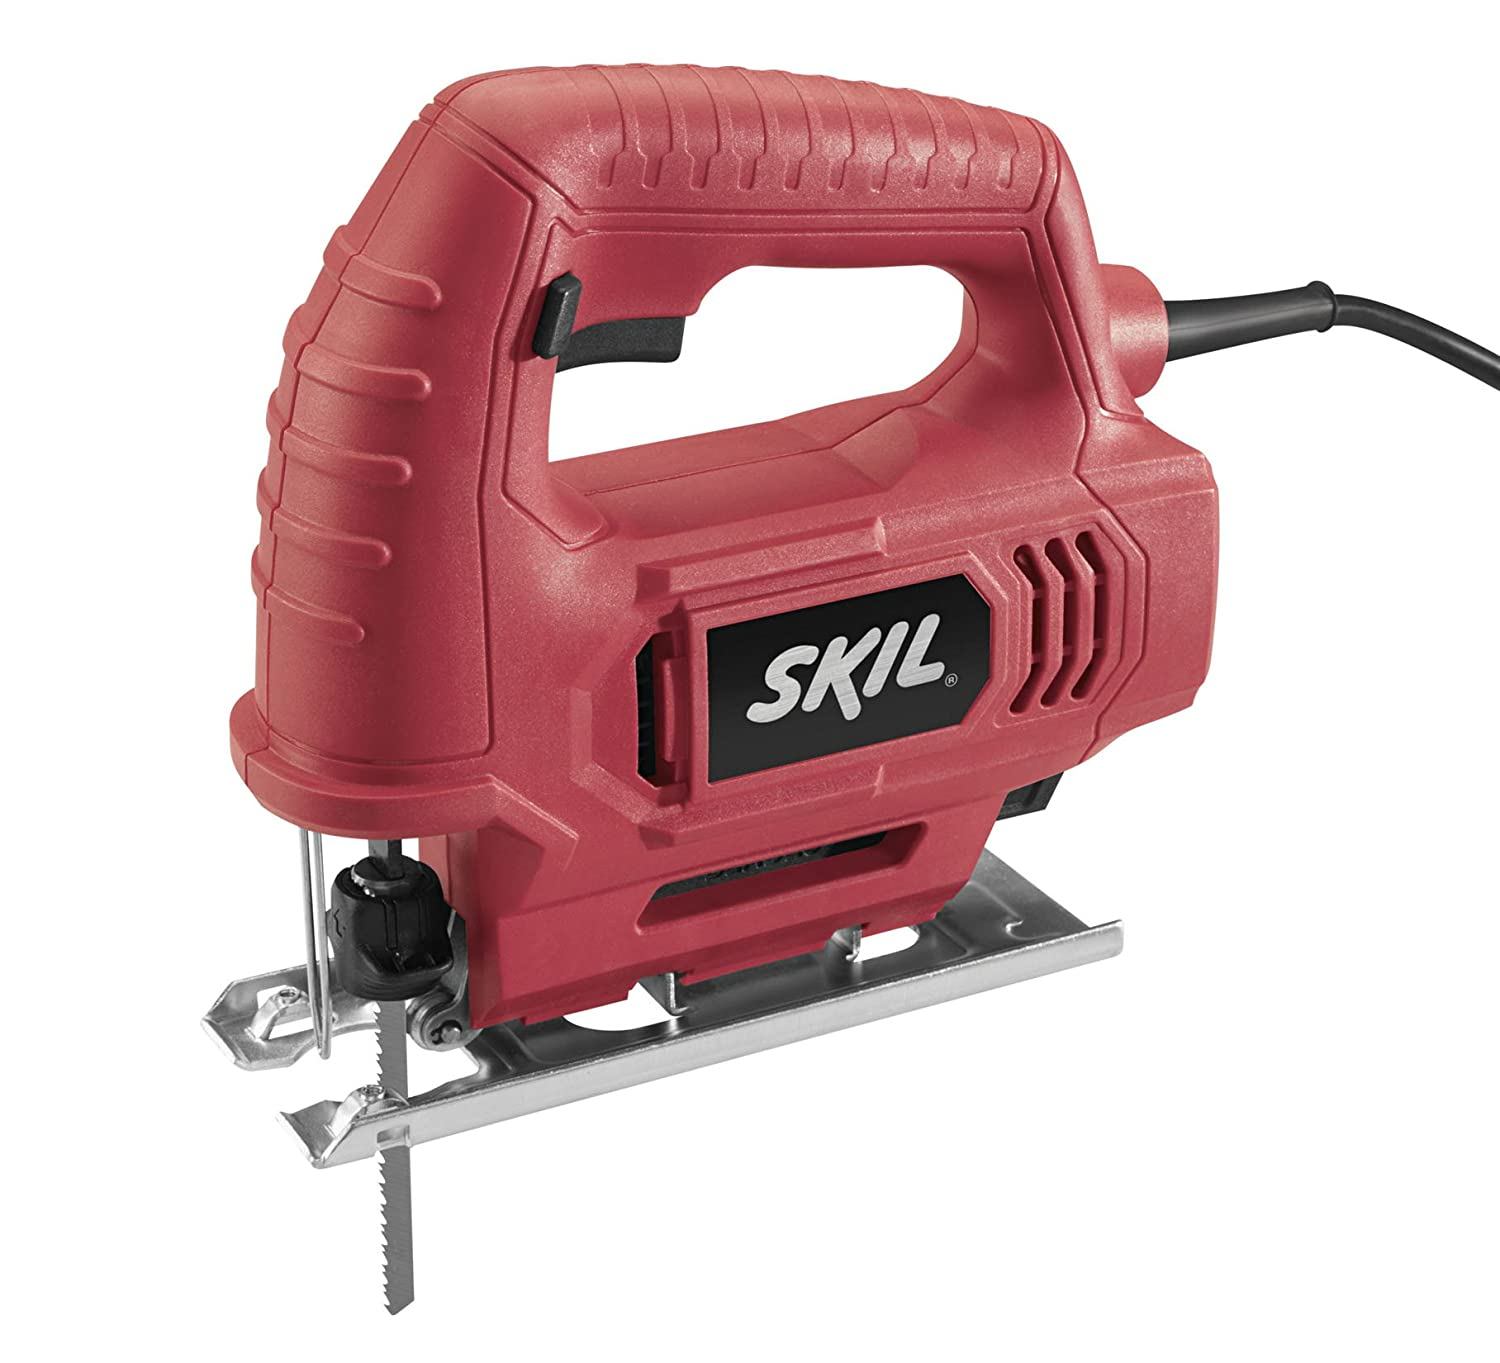 SKIL 4295-01 4.5 Amp Variable Speed Jigsaw